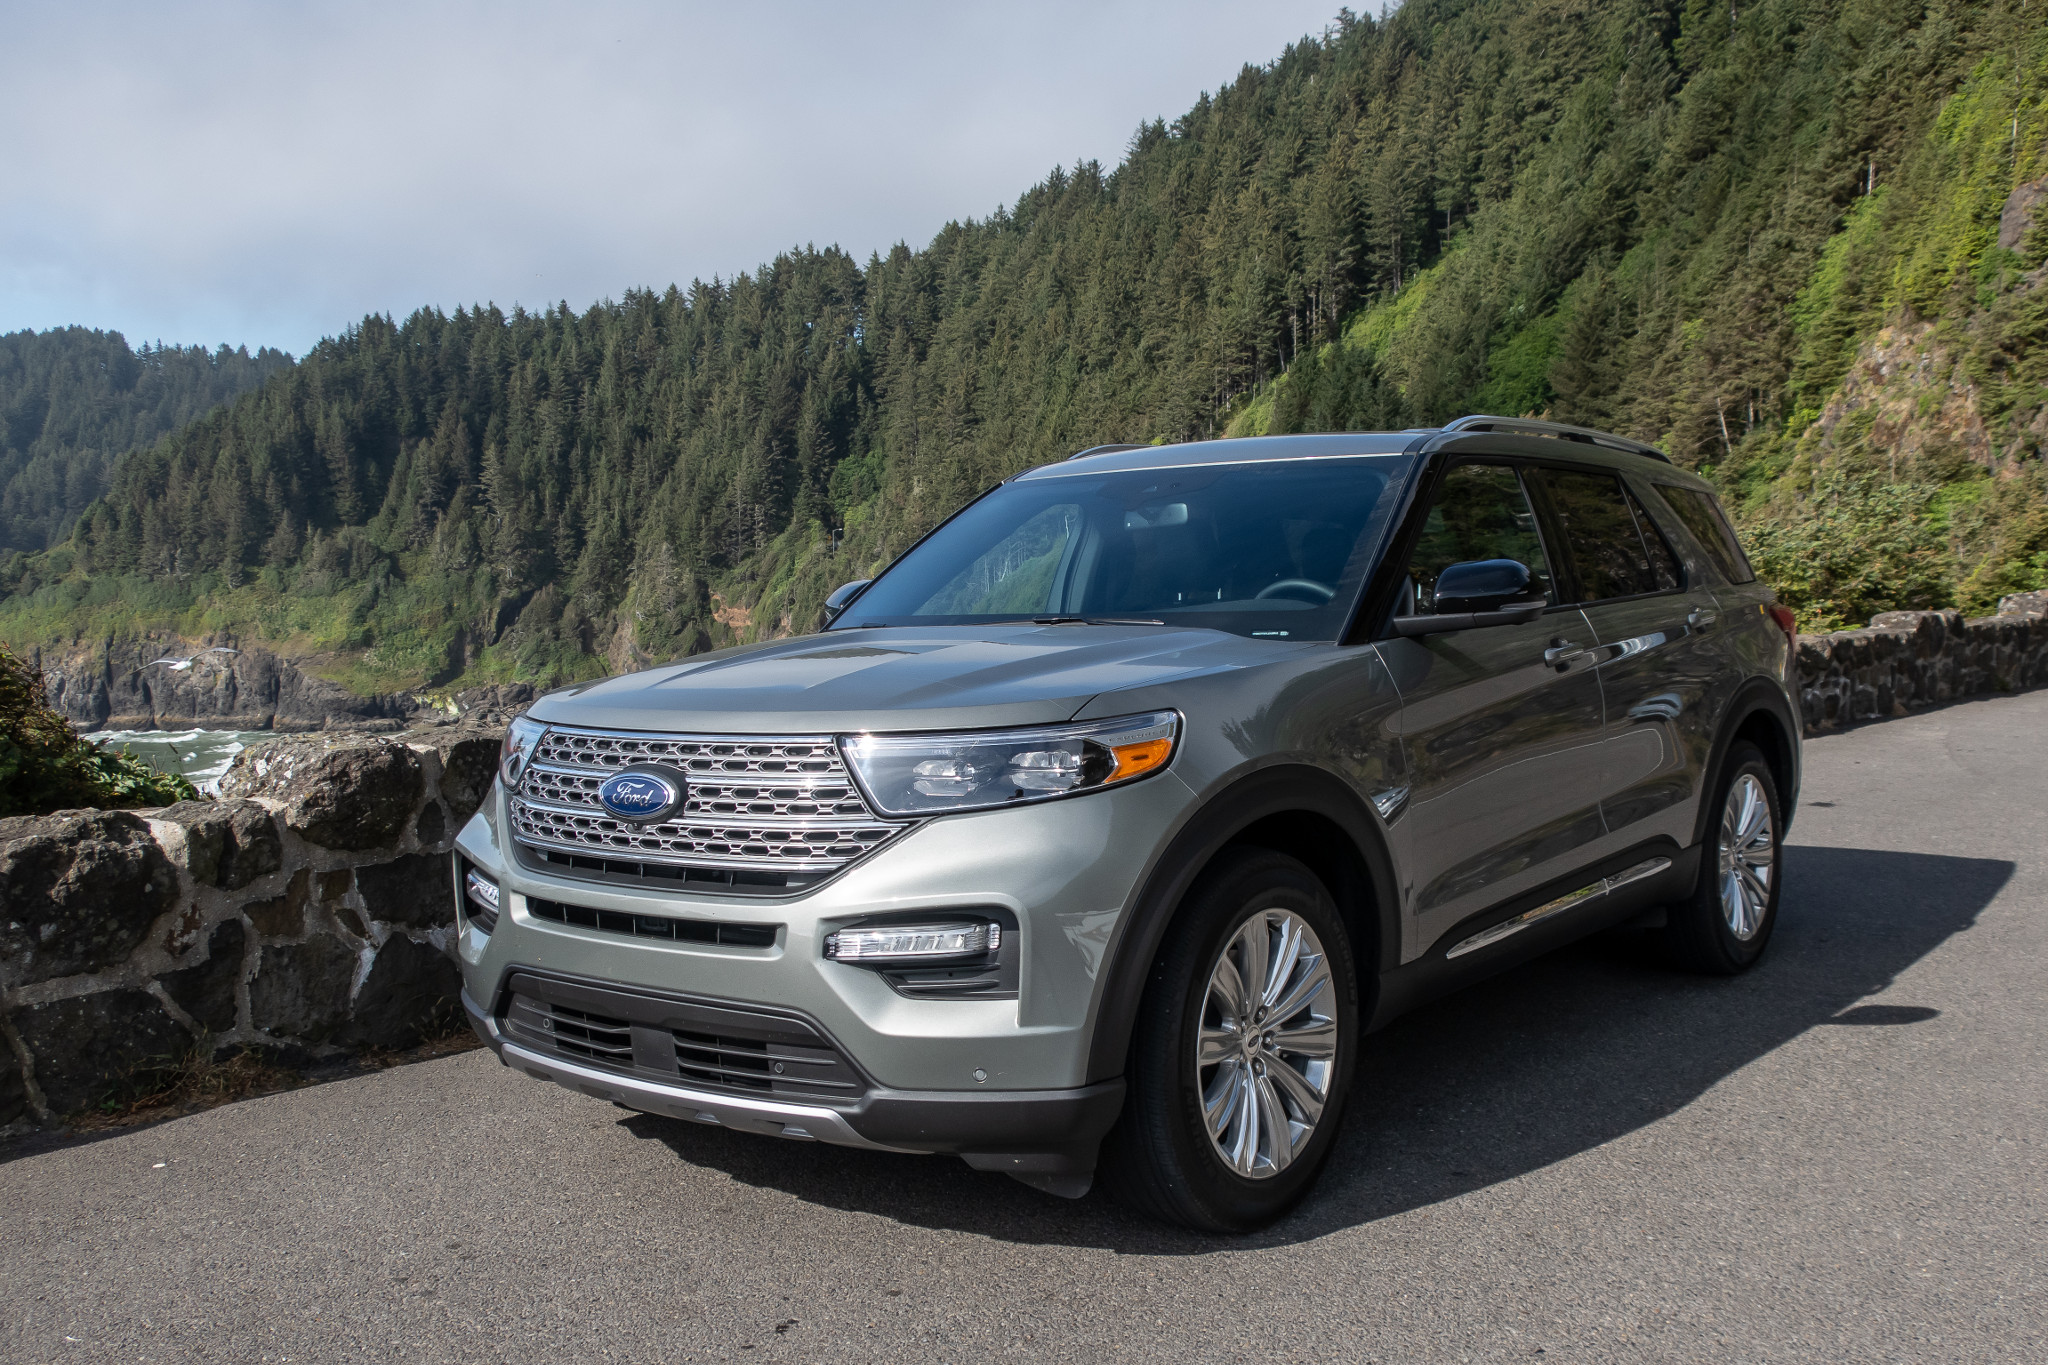 2020 Ford Explorer Hybrid Real World Fuel Economy News Cars Com